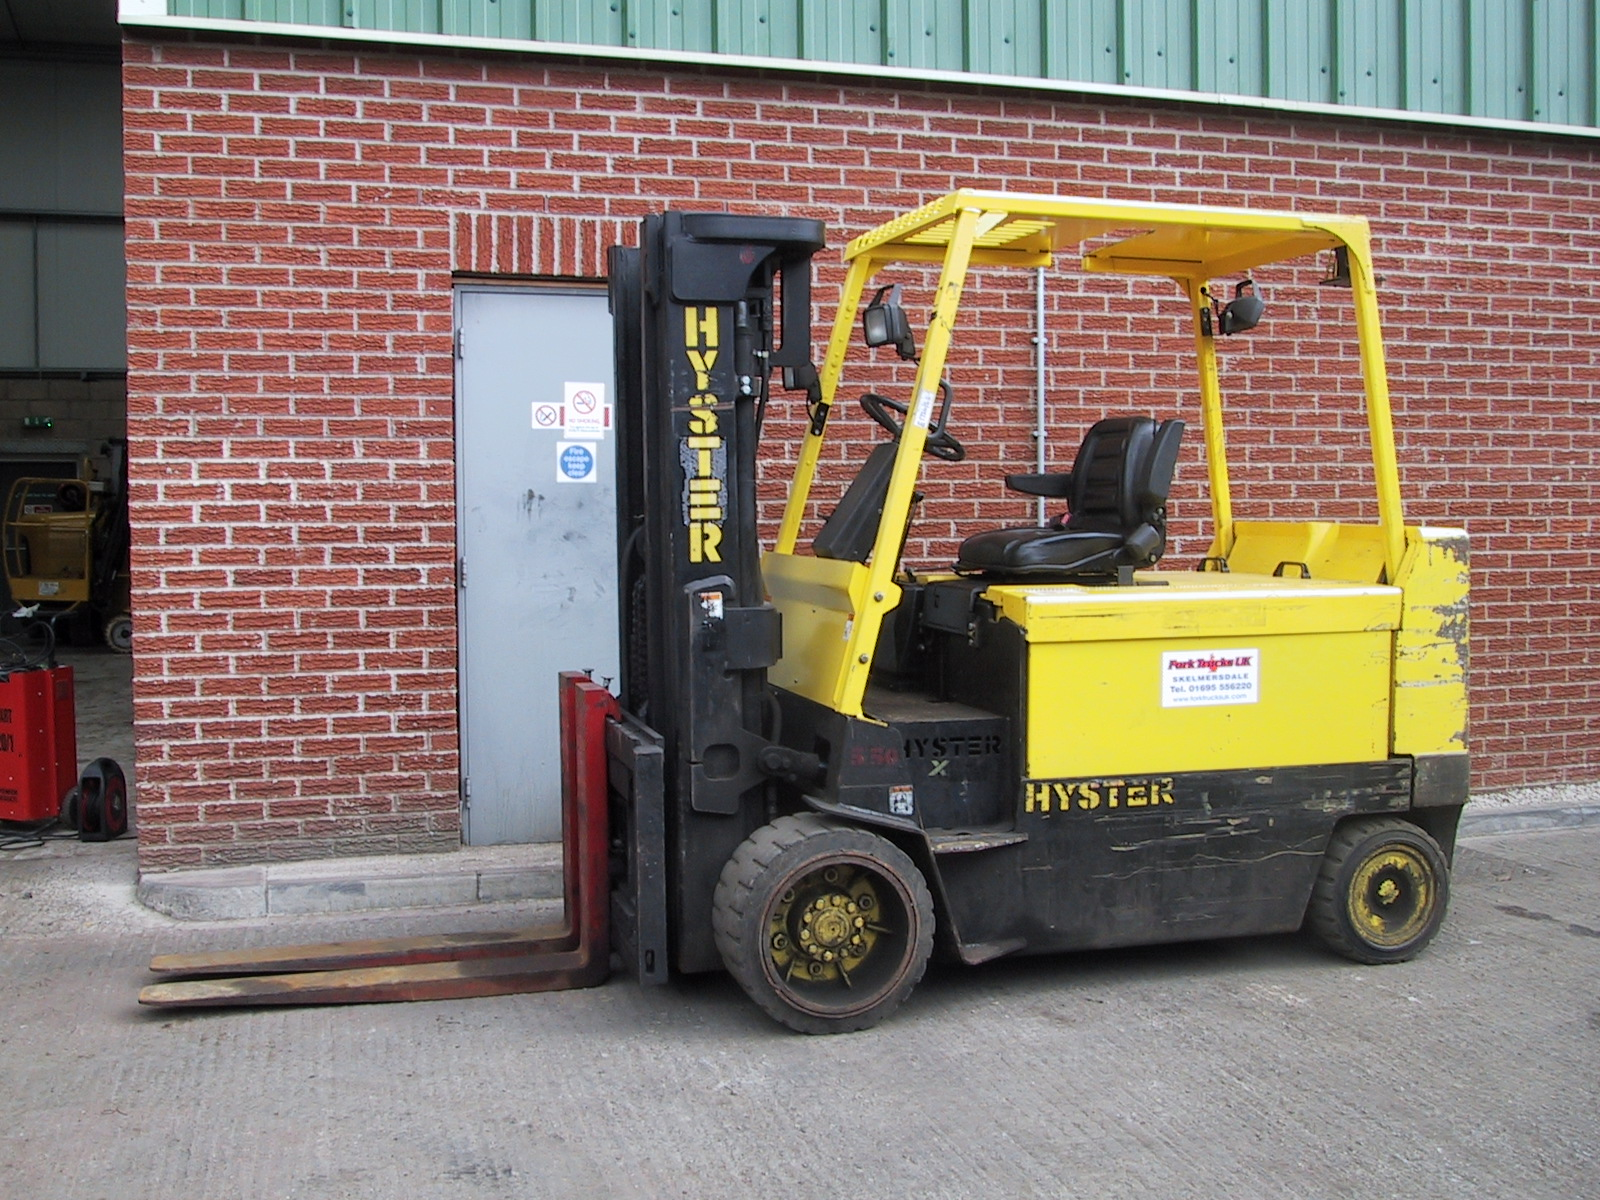 hyster forklift wiring diagram help for understanding simple home electrical diagrams 60 the best